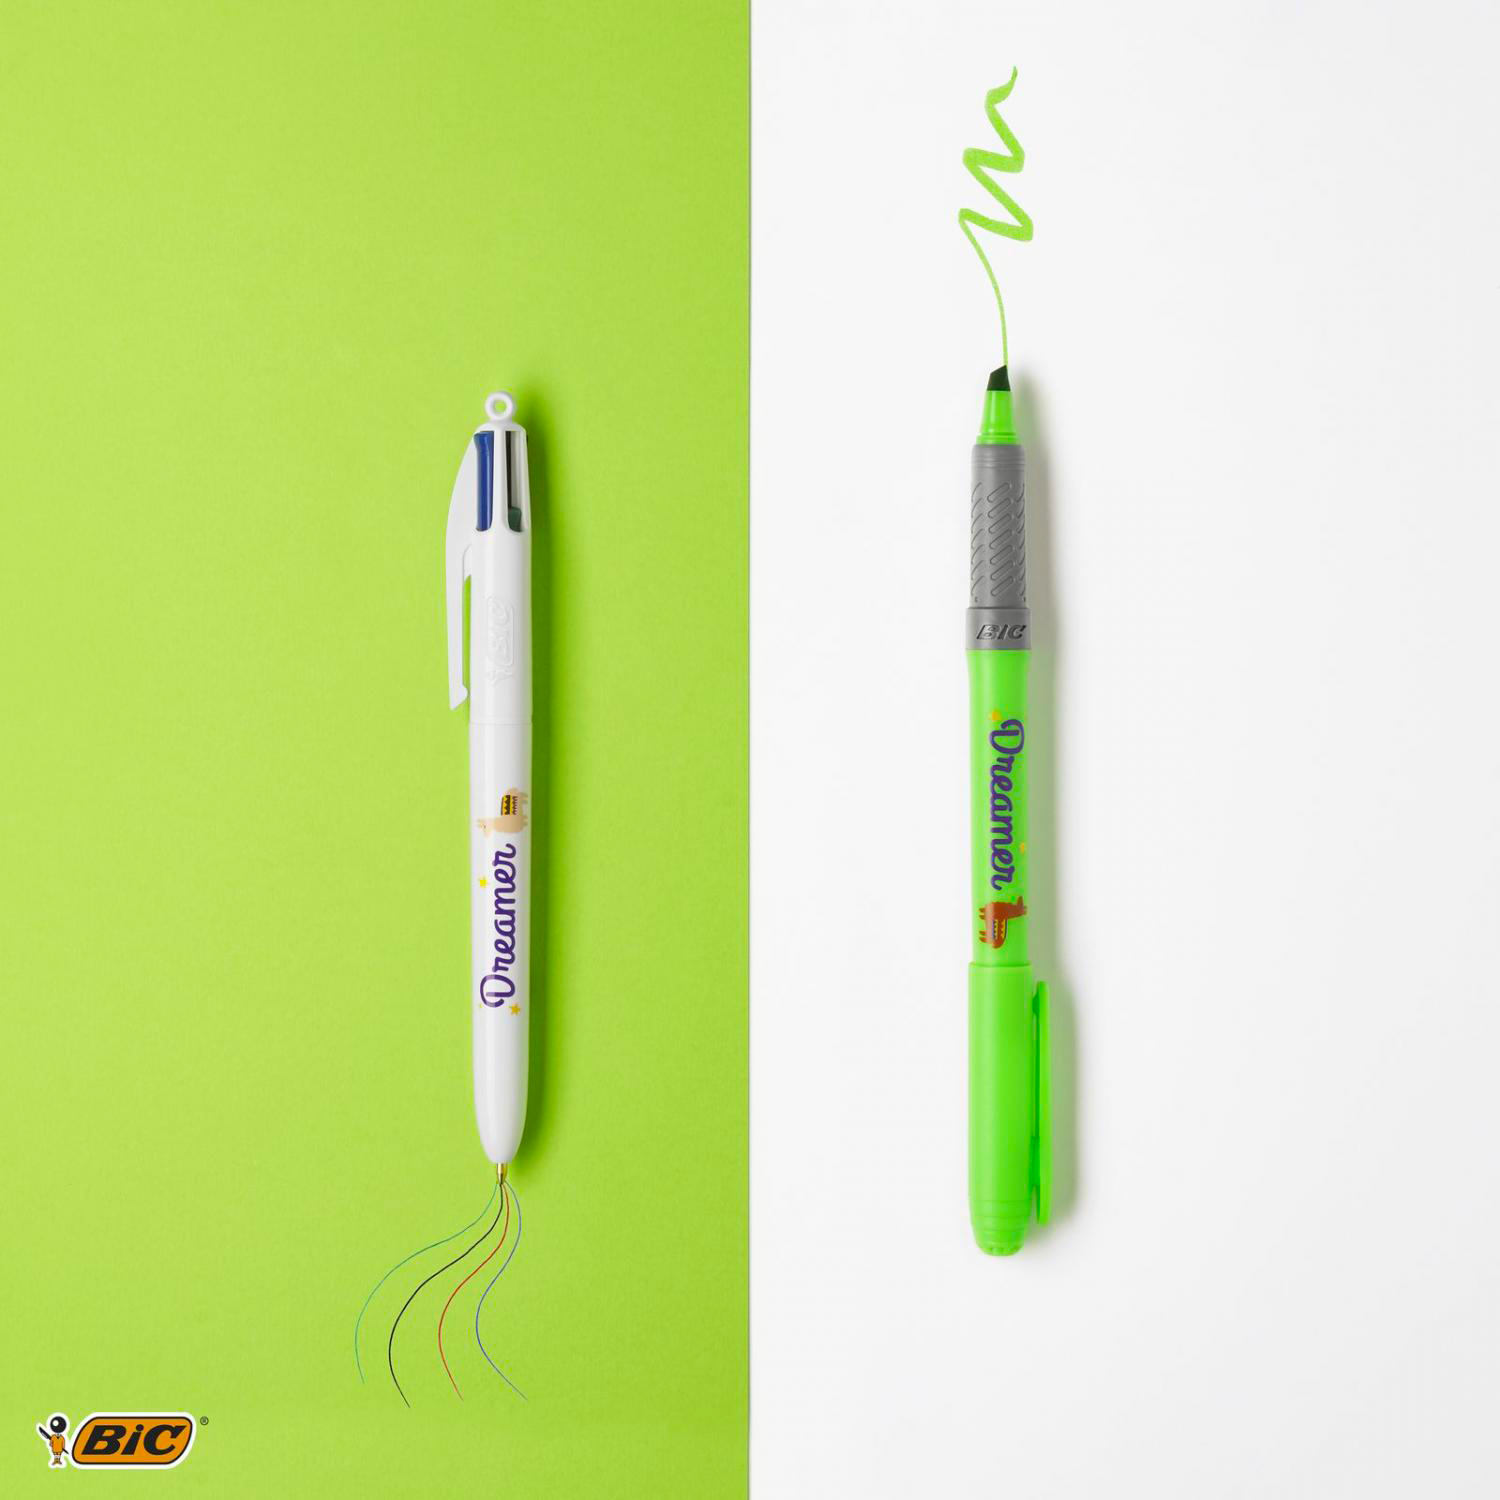 Bic 972091 set da cancelleria